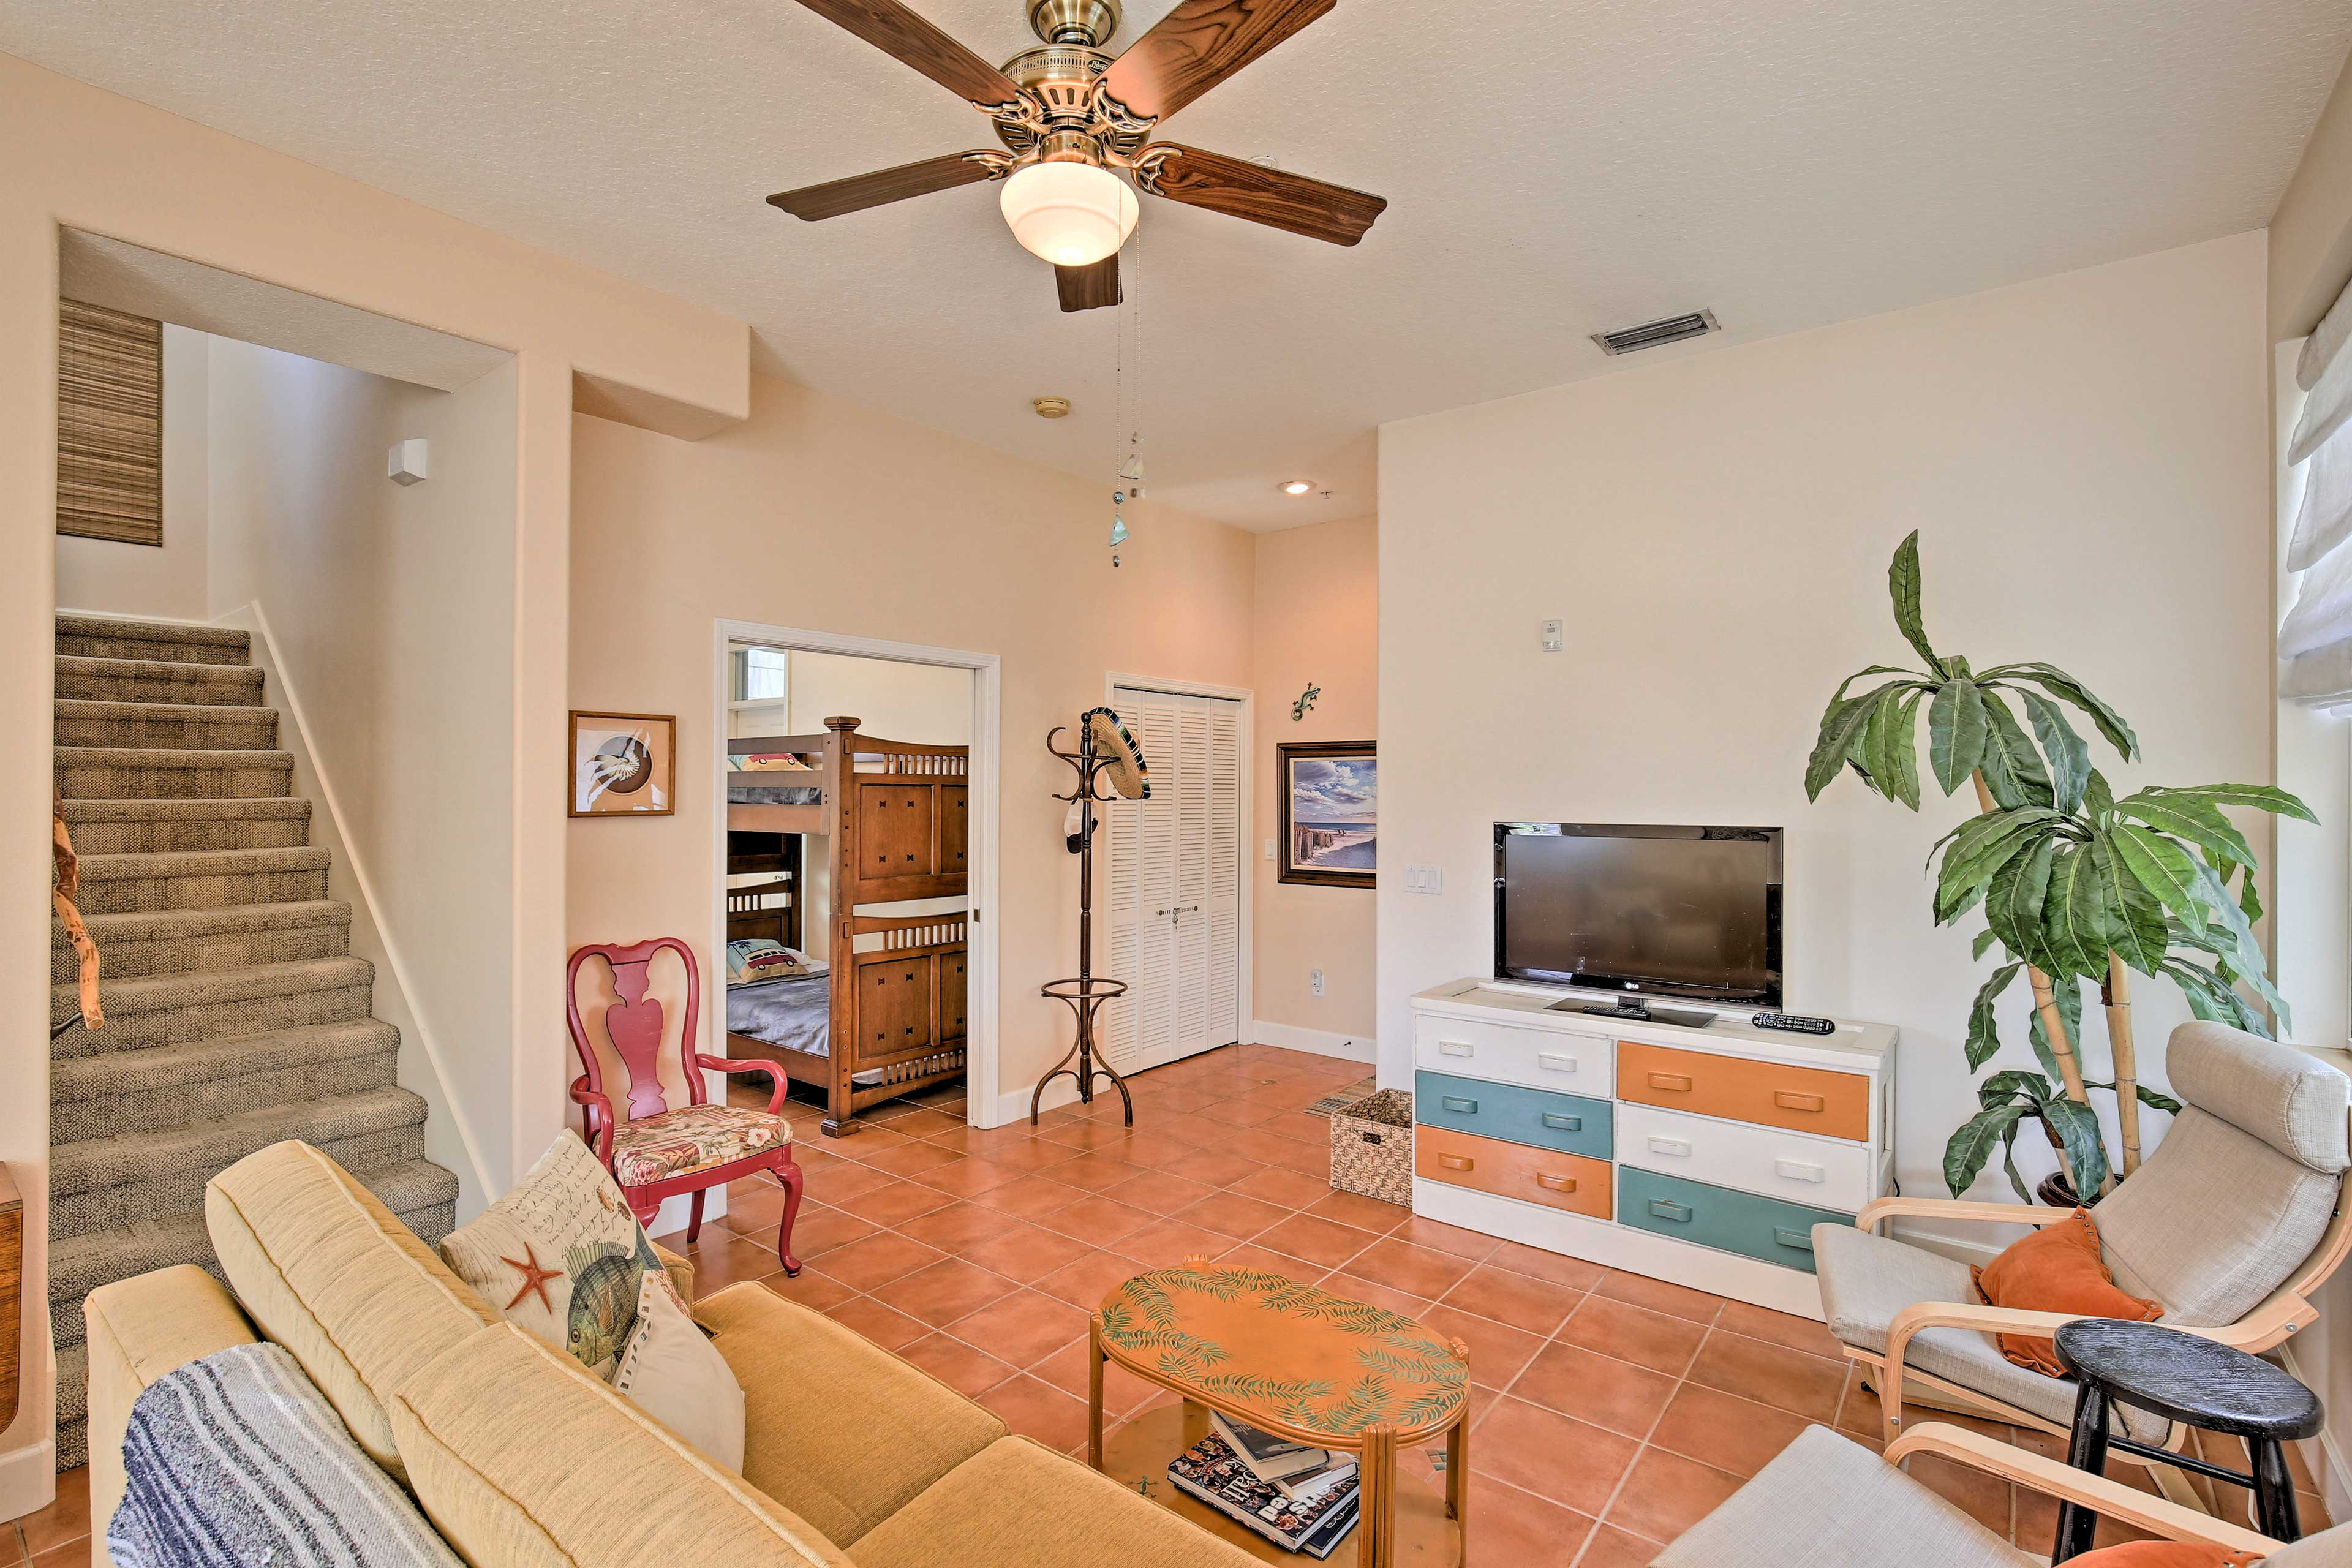 Find refuge from the sun in the cozy living area.